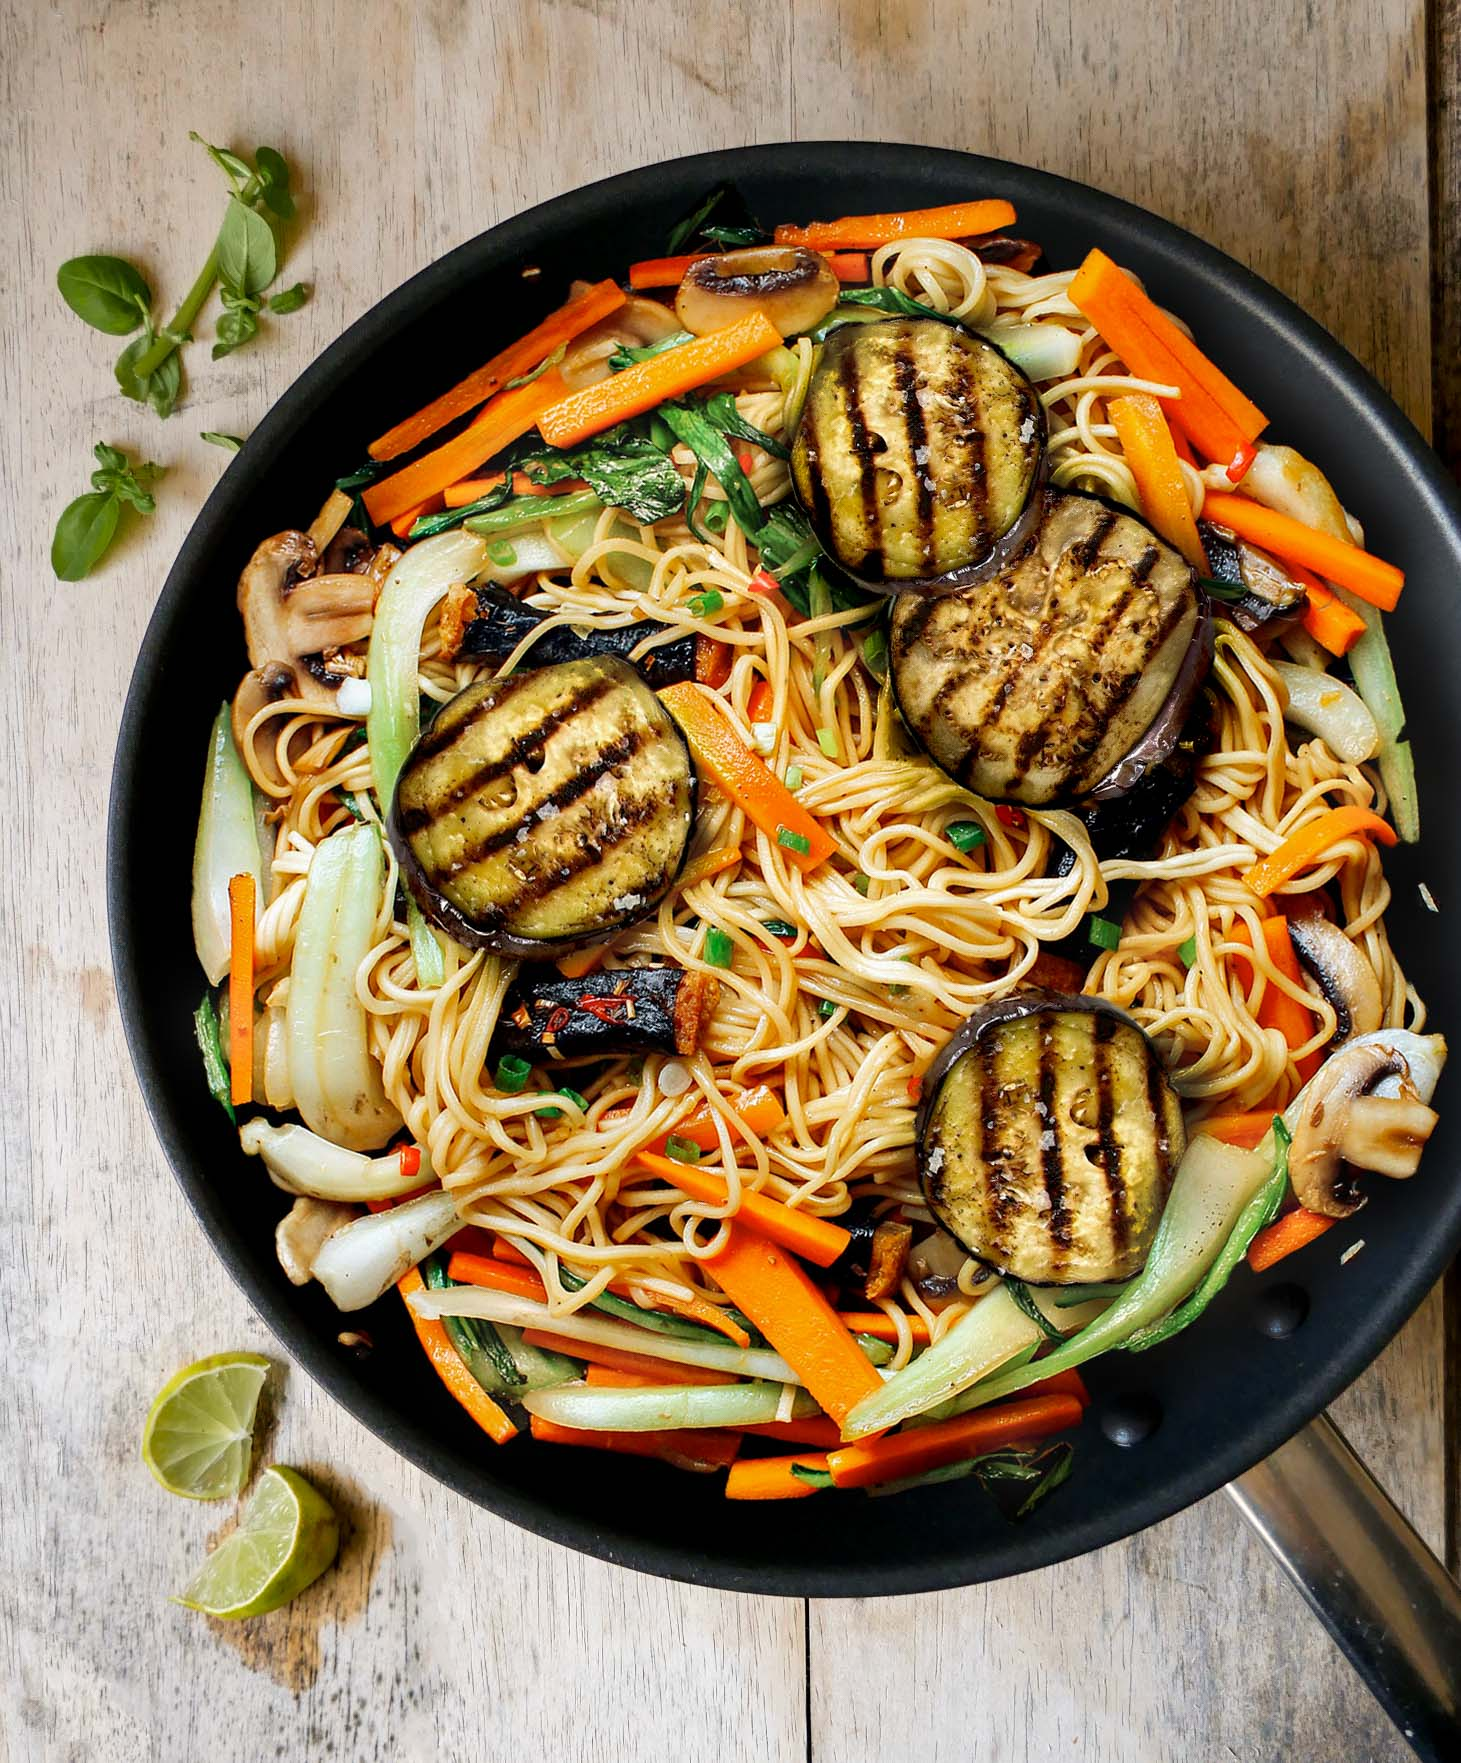 Stir-fried Noodles with vegetables vegan recipe